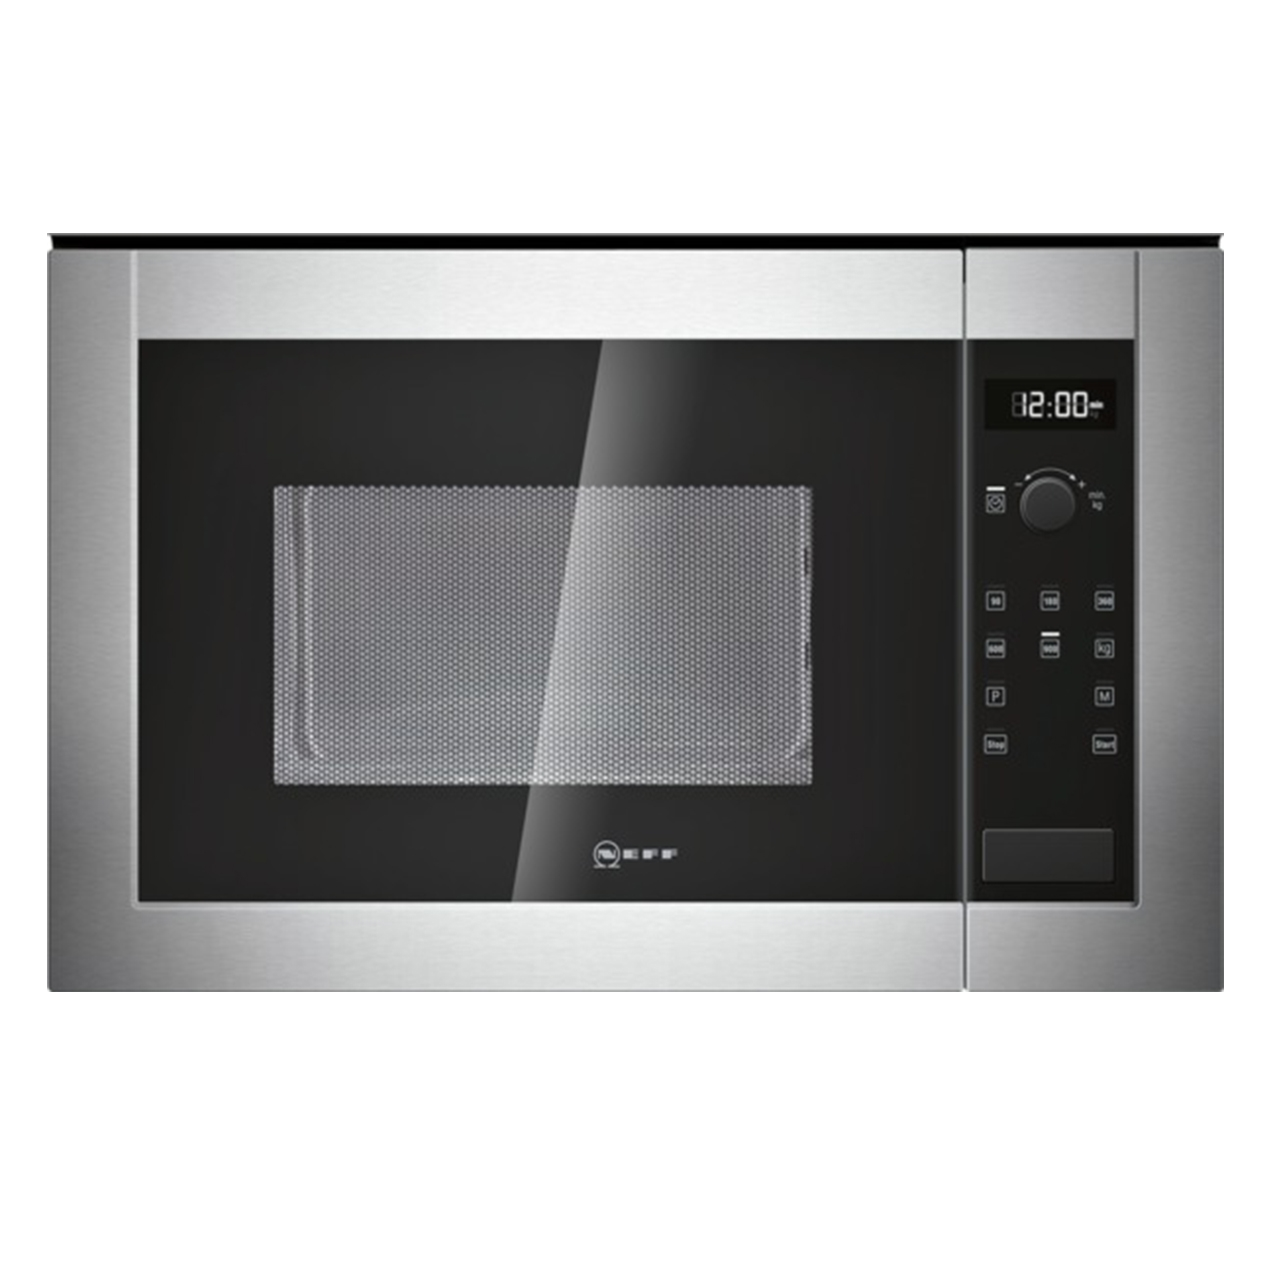 Neff H12we60n0g 900w Integrated Microwave Oven Stainless Steel